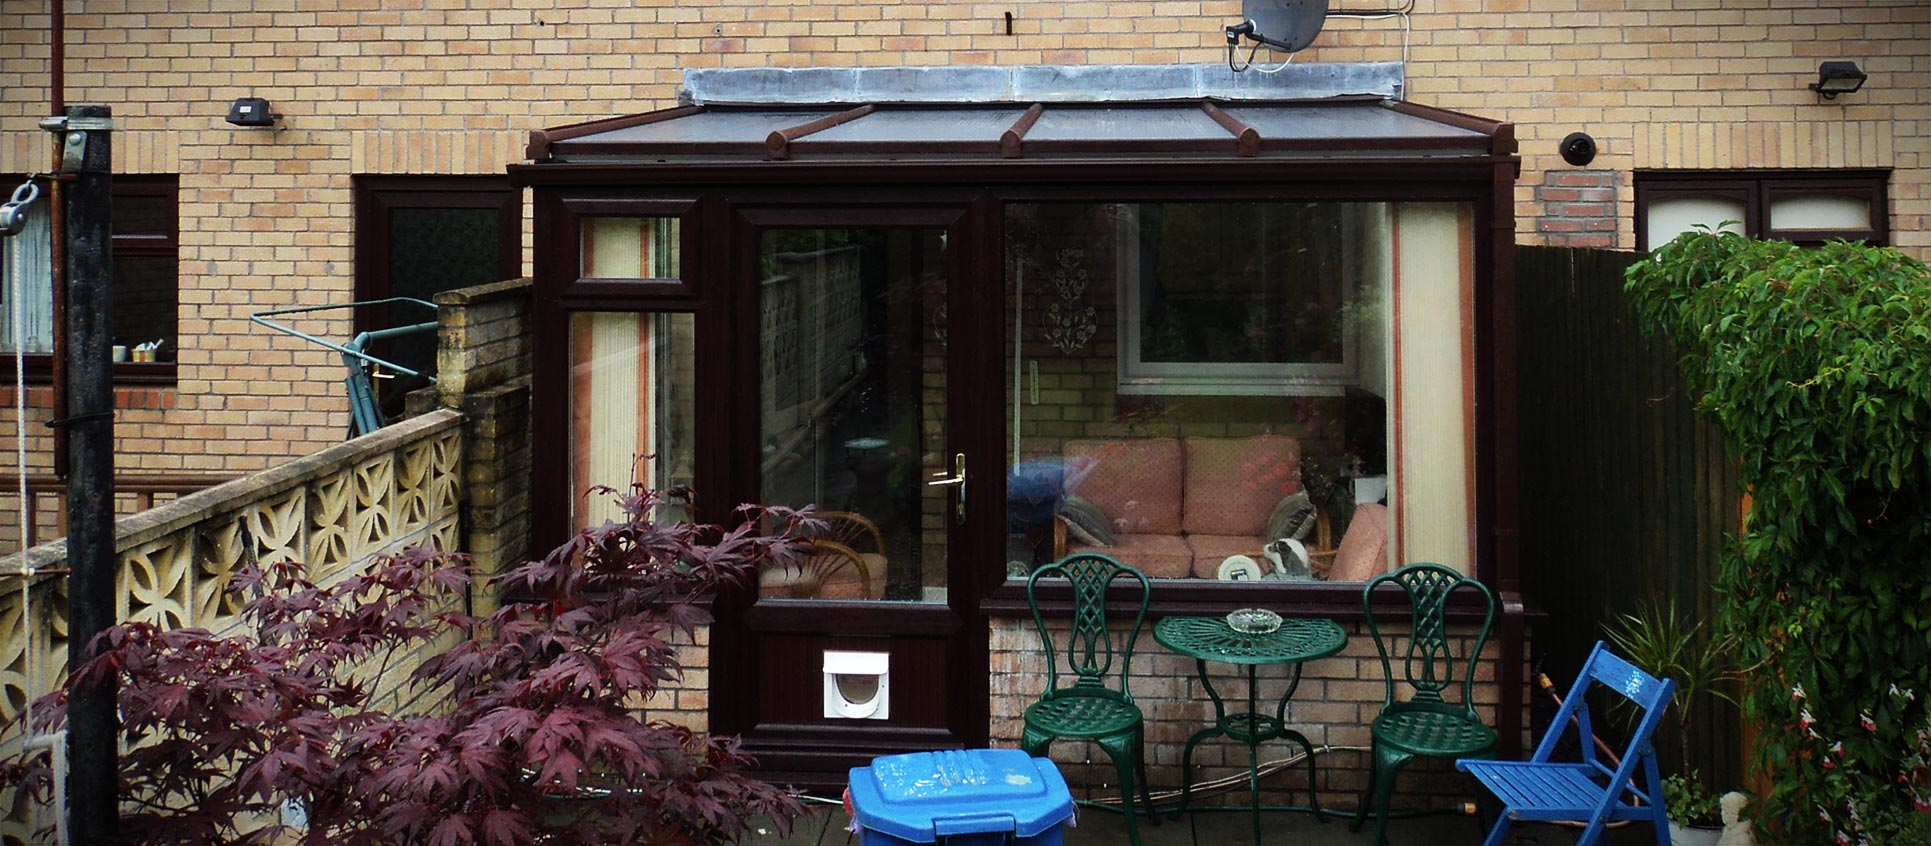 Rosewood uPVC lean to conservatory installation